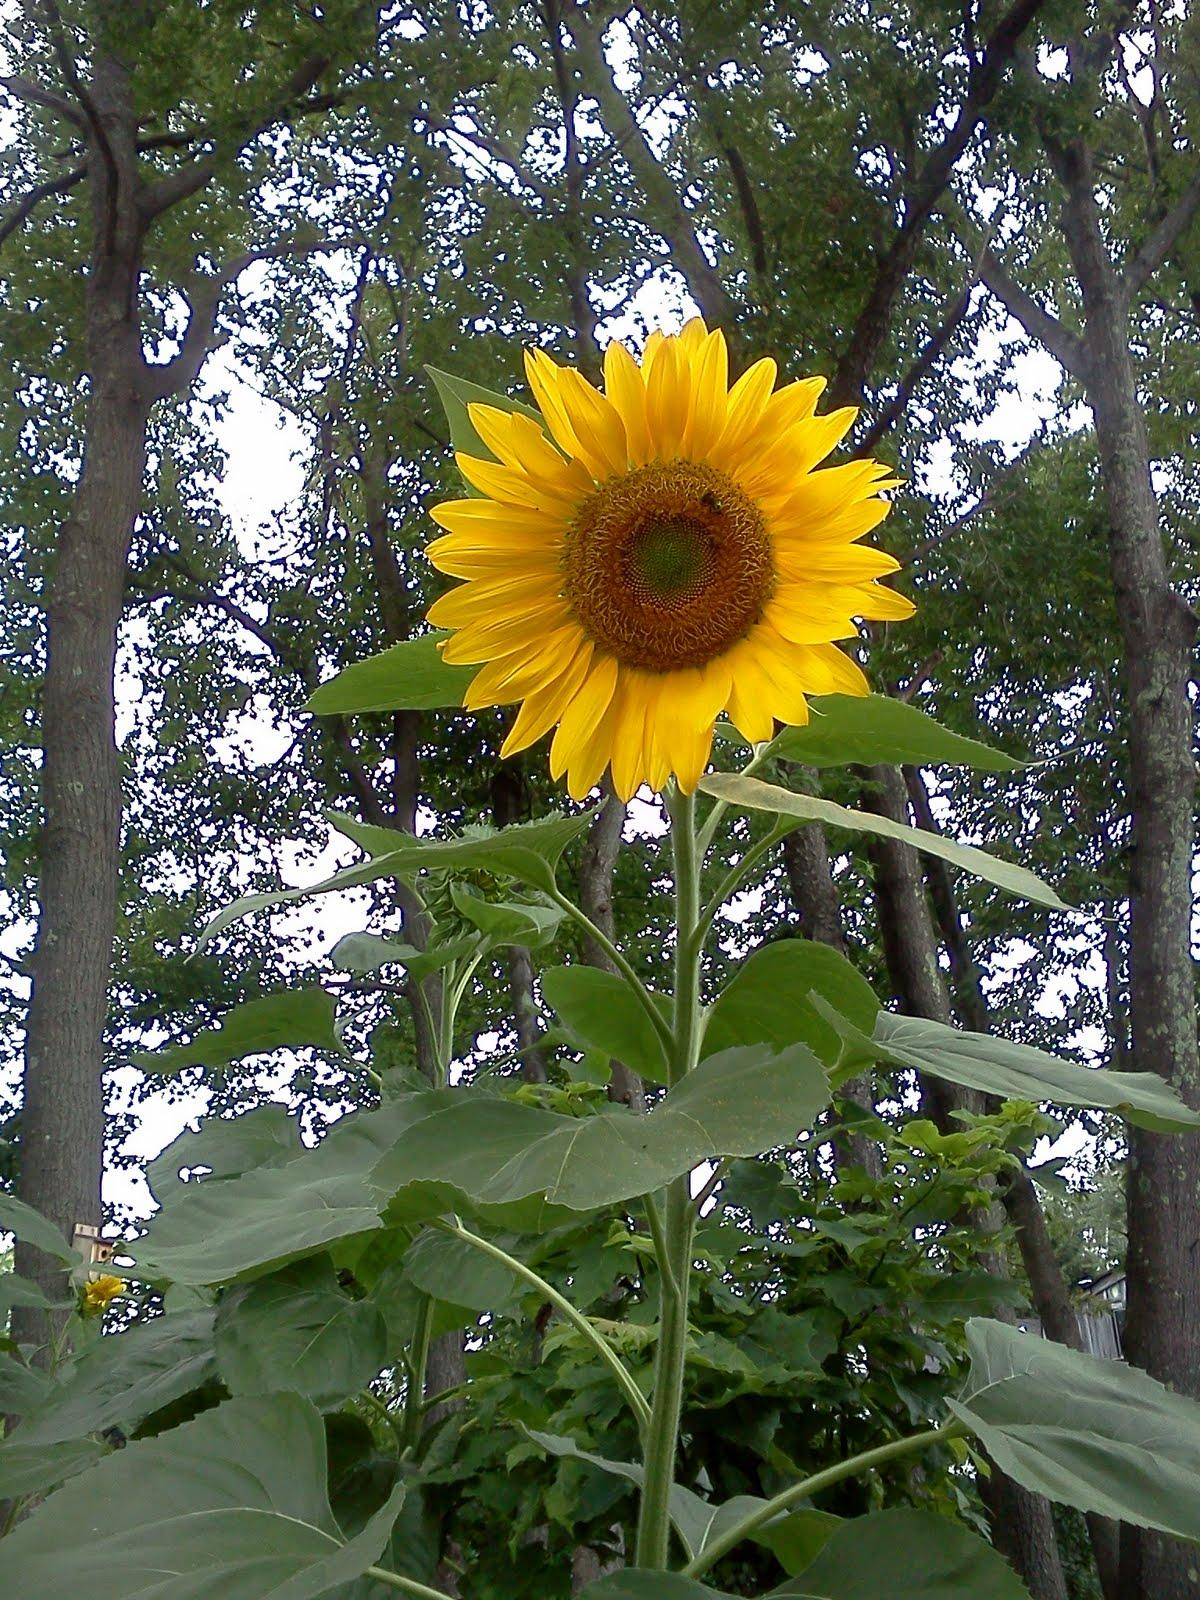 sunflowers had bloomed.